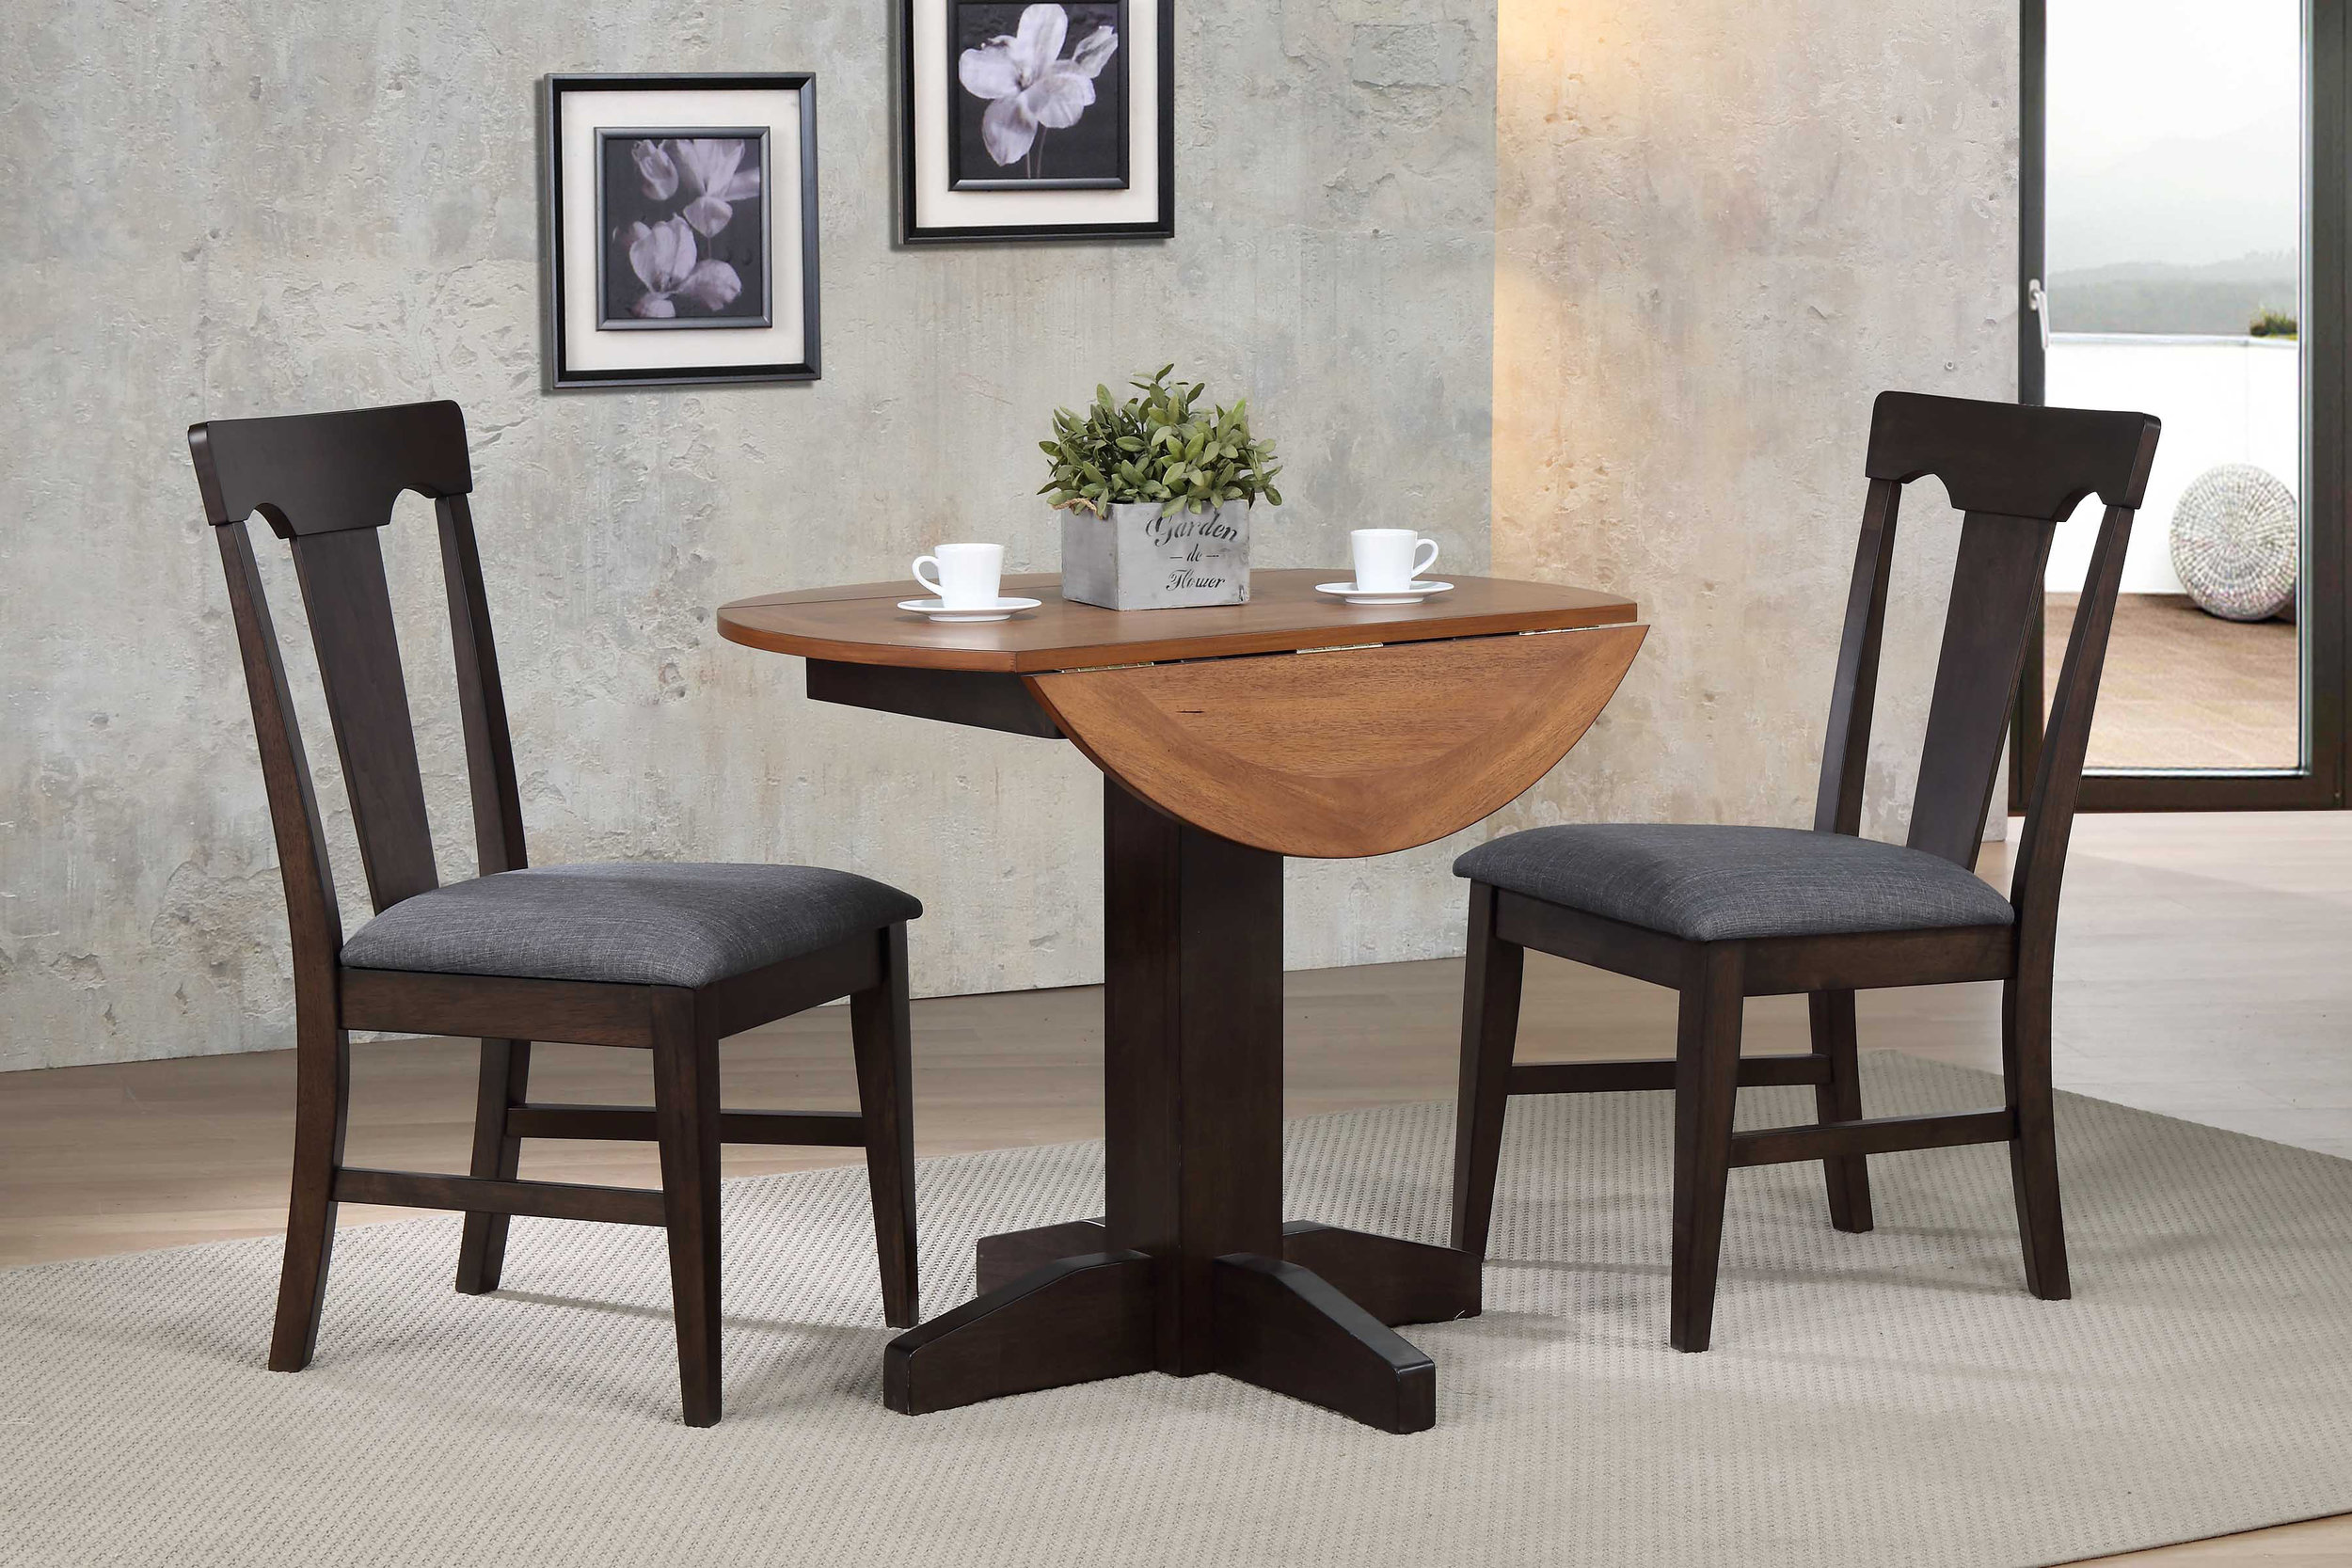 0733-50-DLT Choices Drop Leaf table HR.jpg